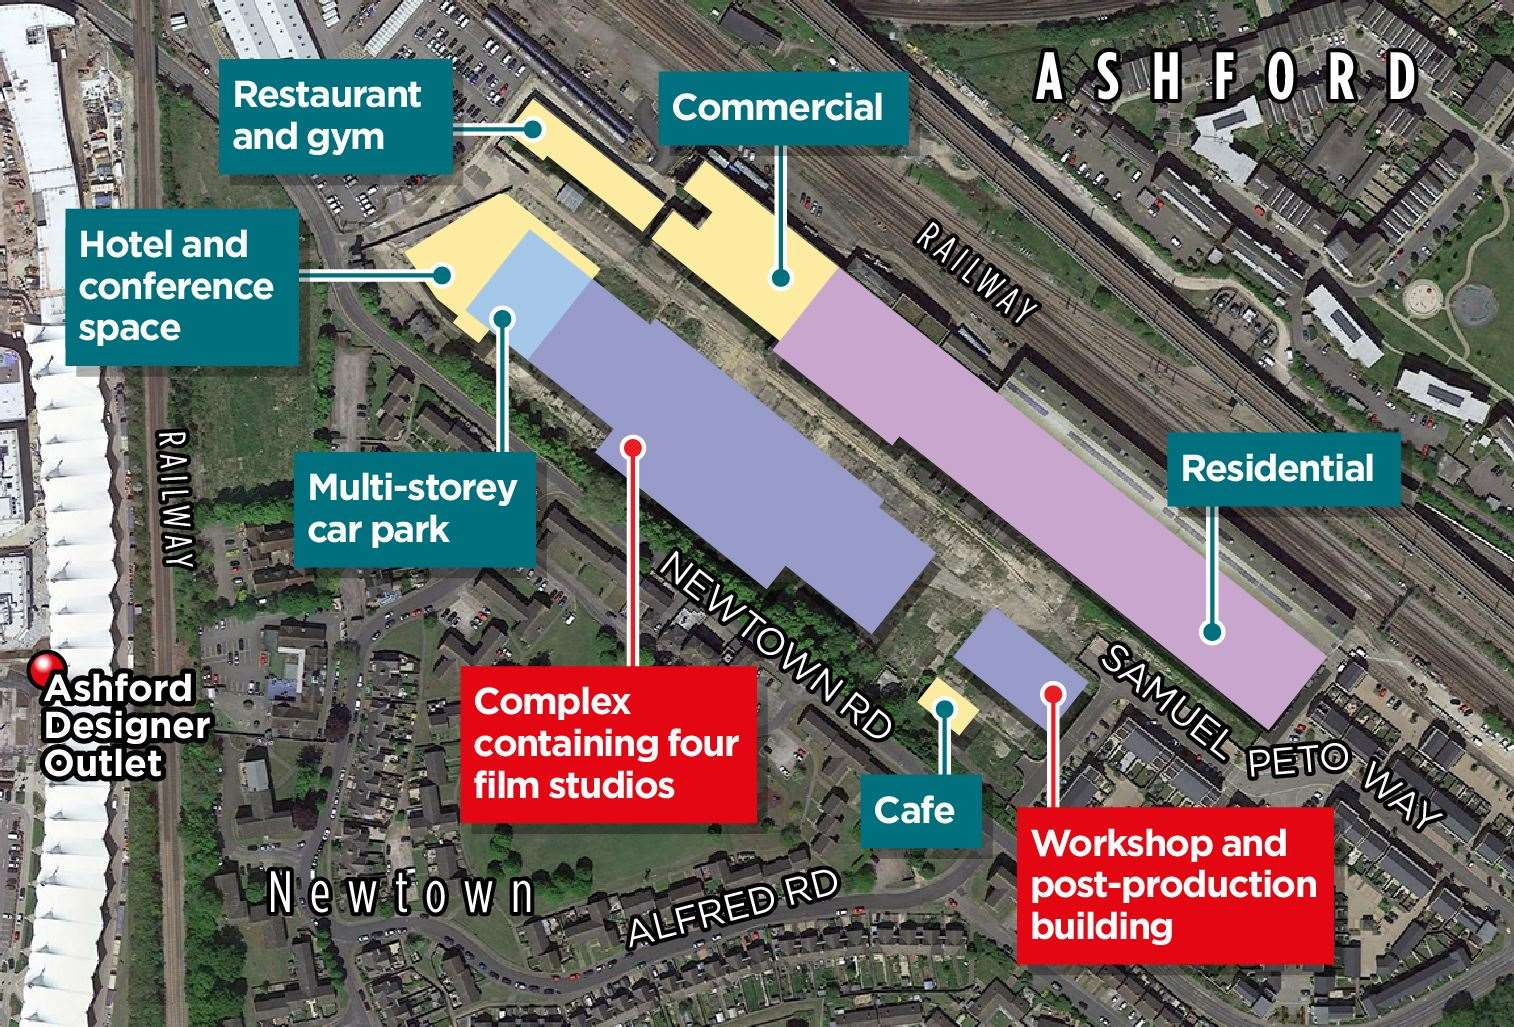 A map of how the Newtown site will look